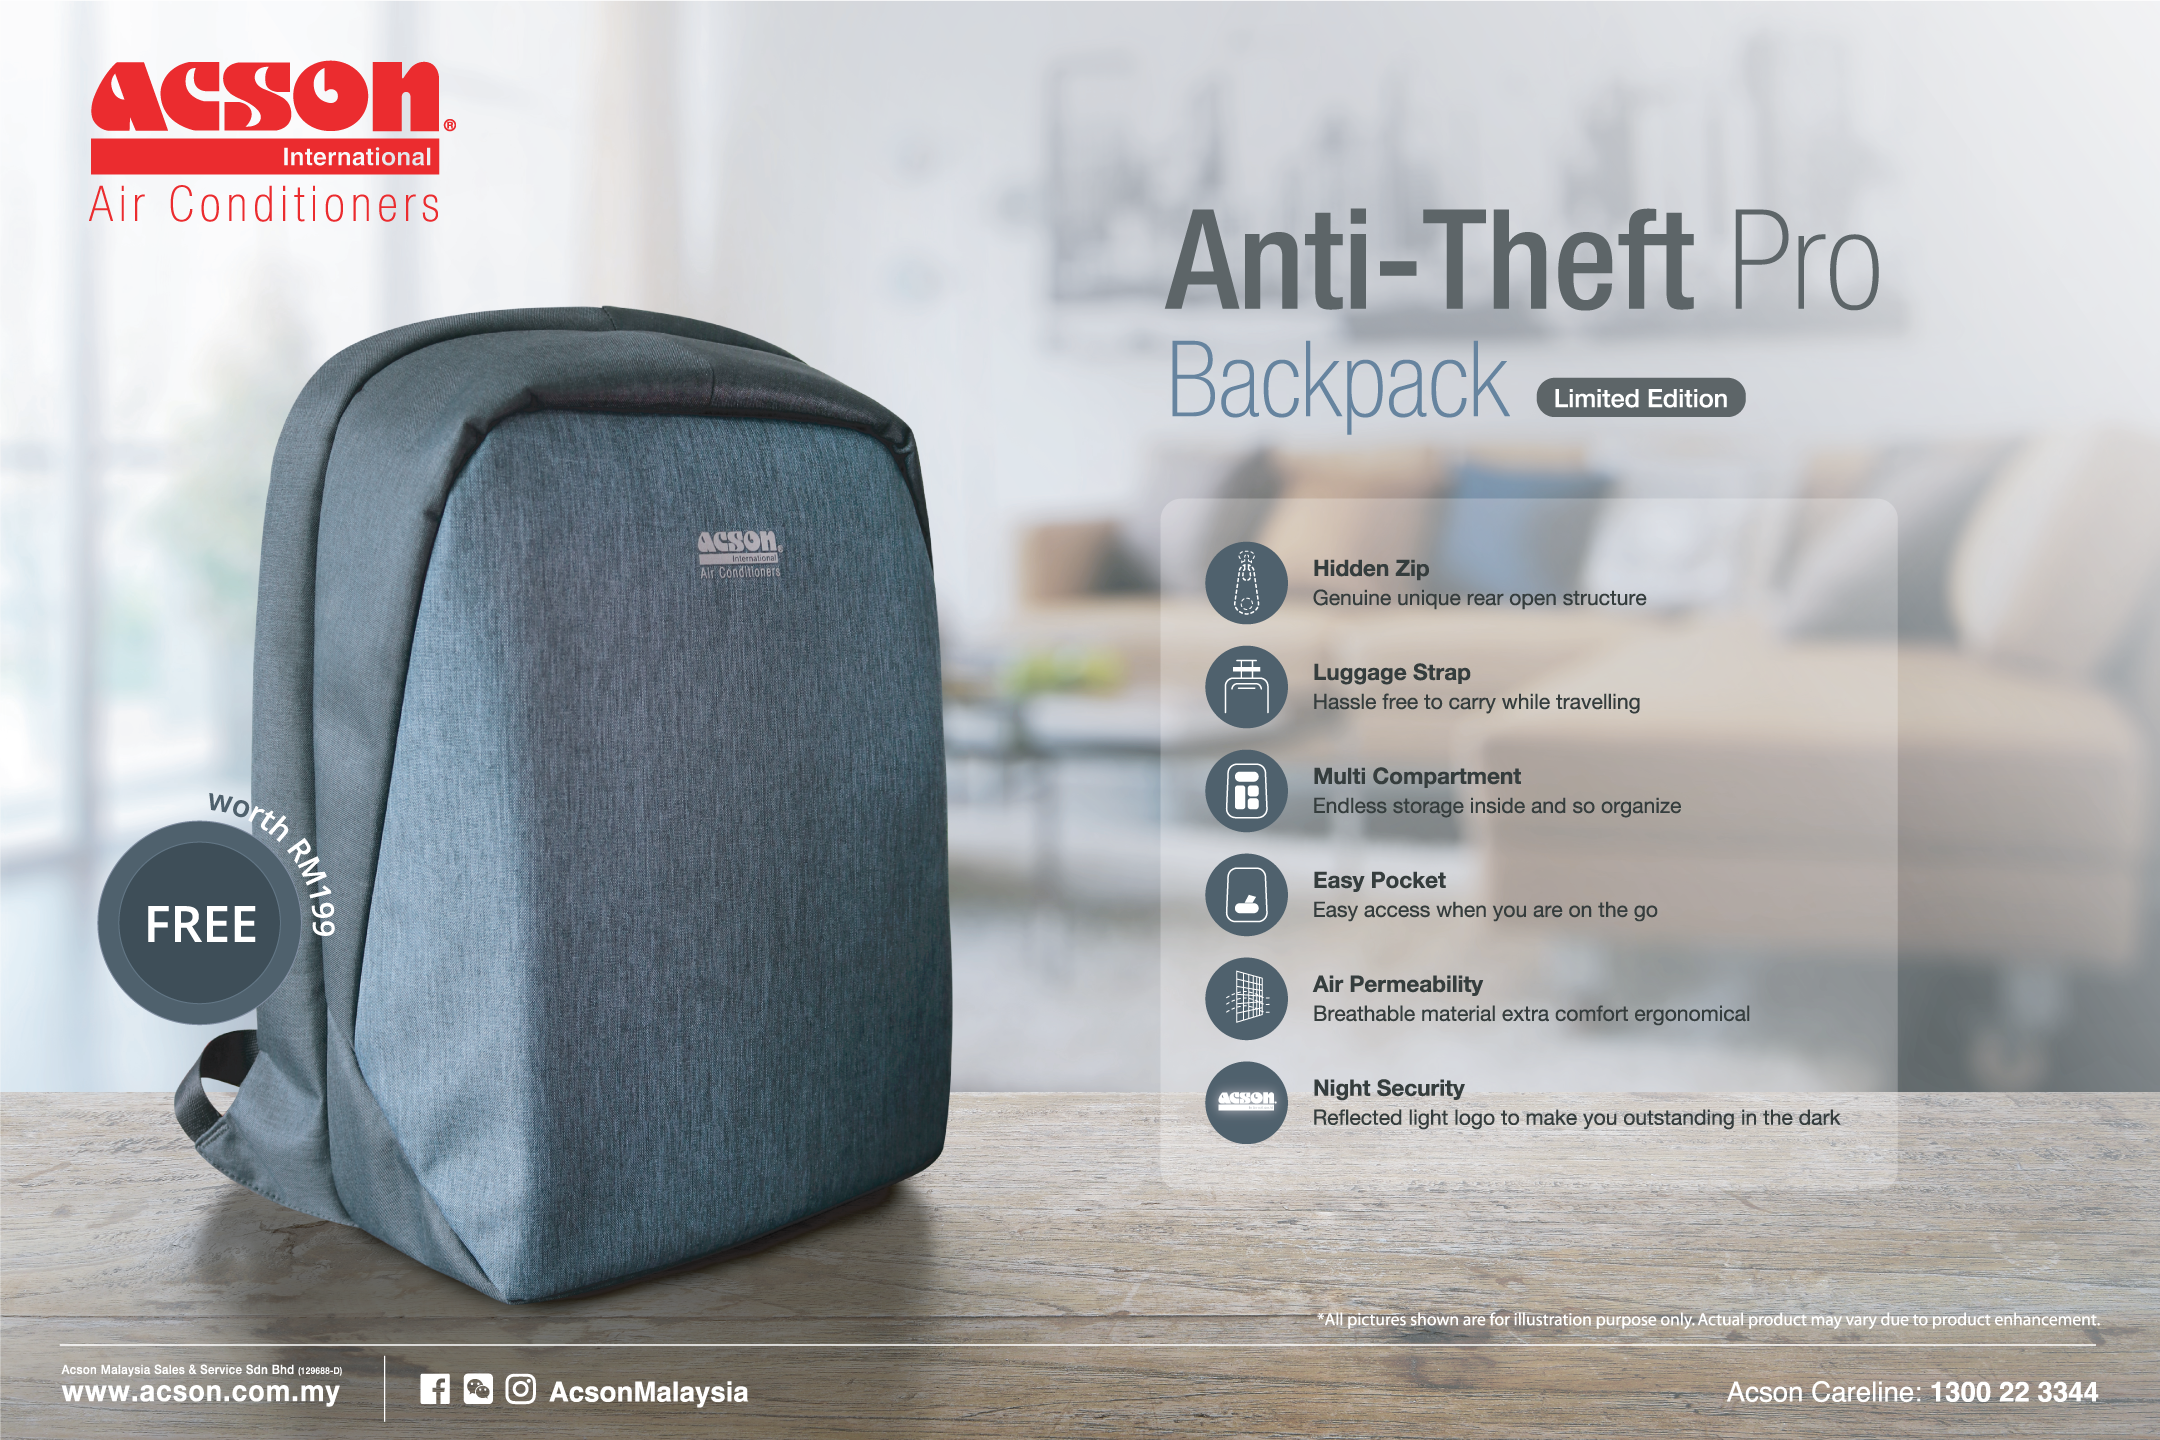 Complimentary Gift Acson Anti Theft Pro Backpack Worth